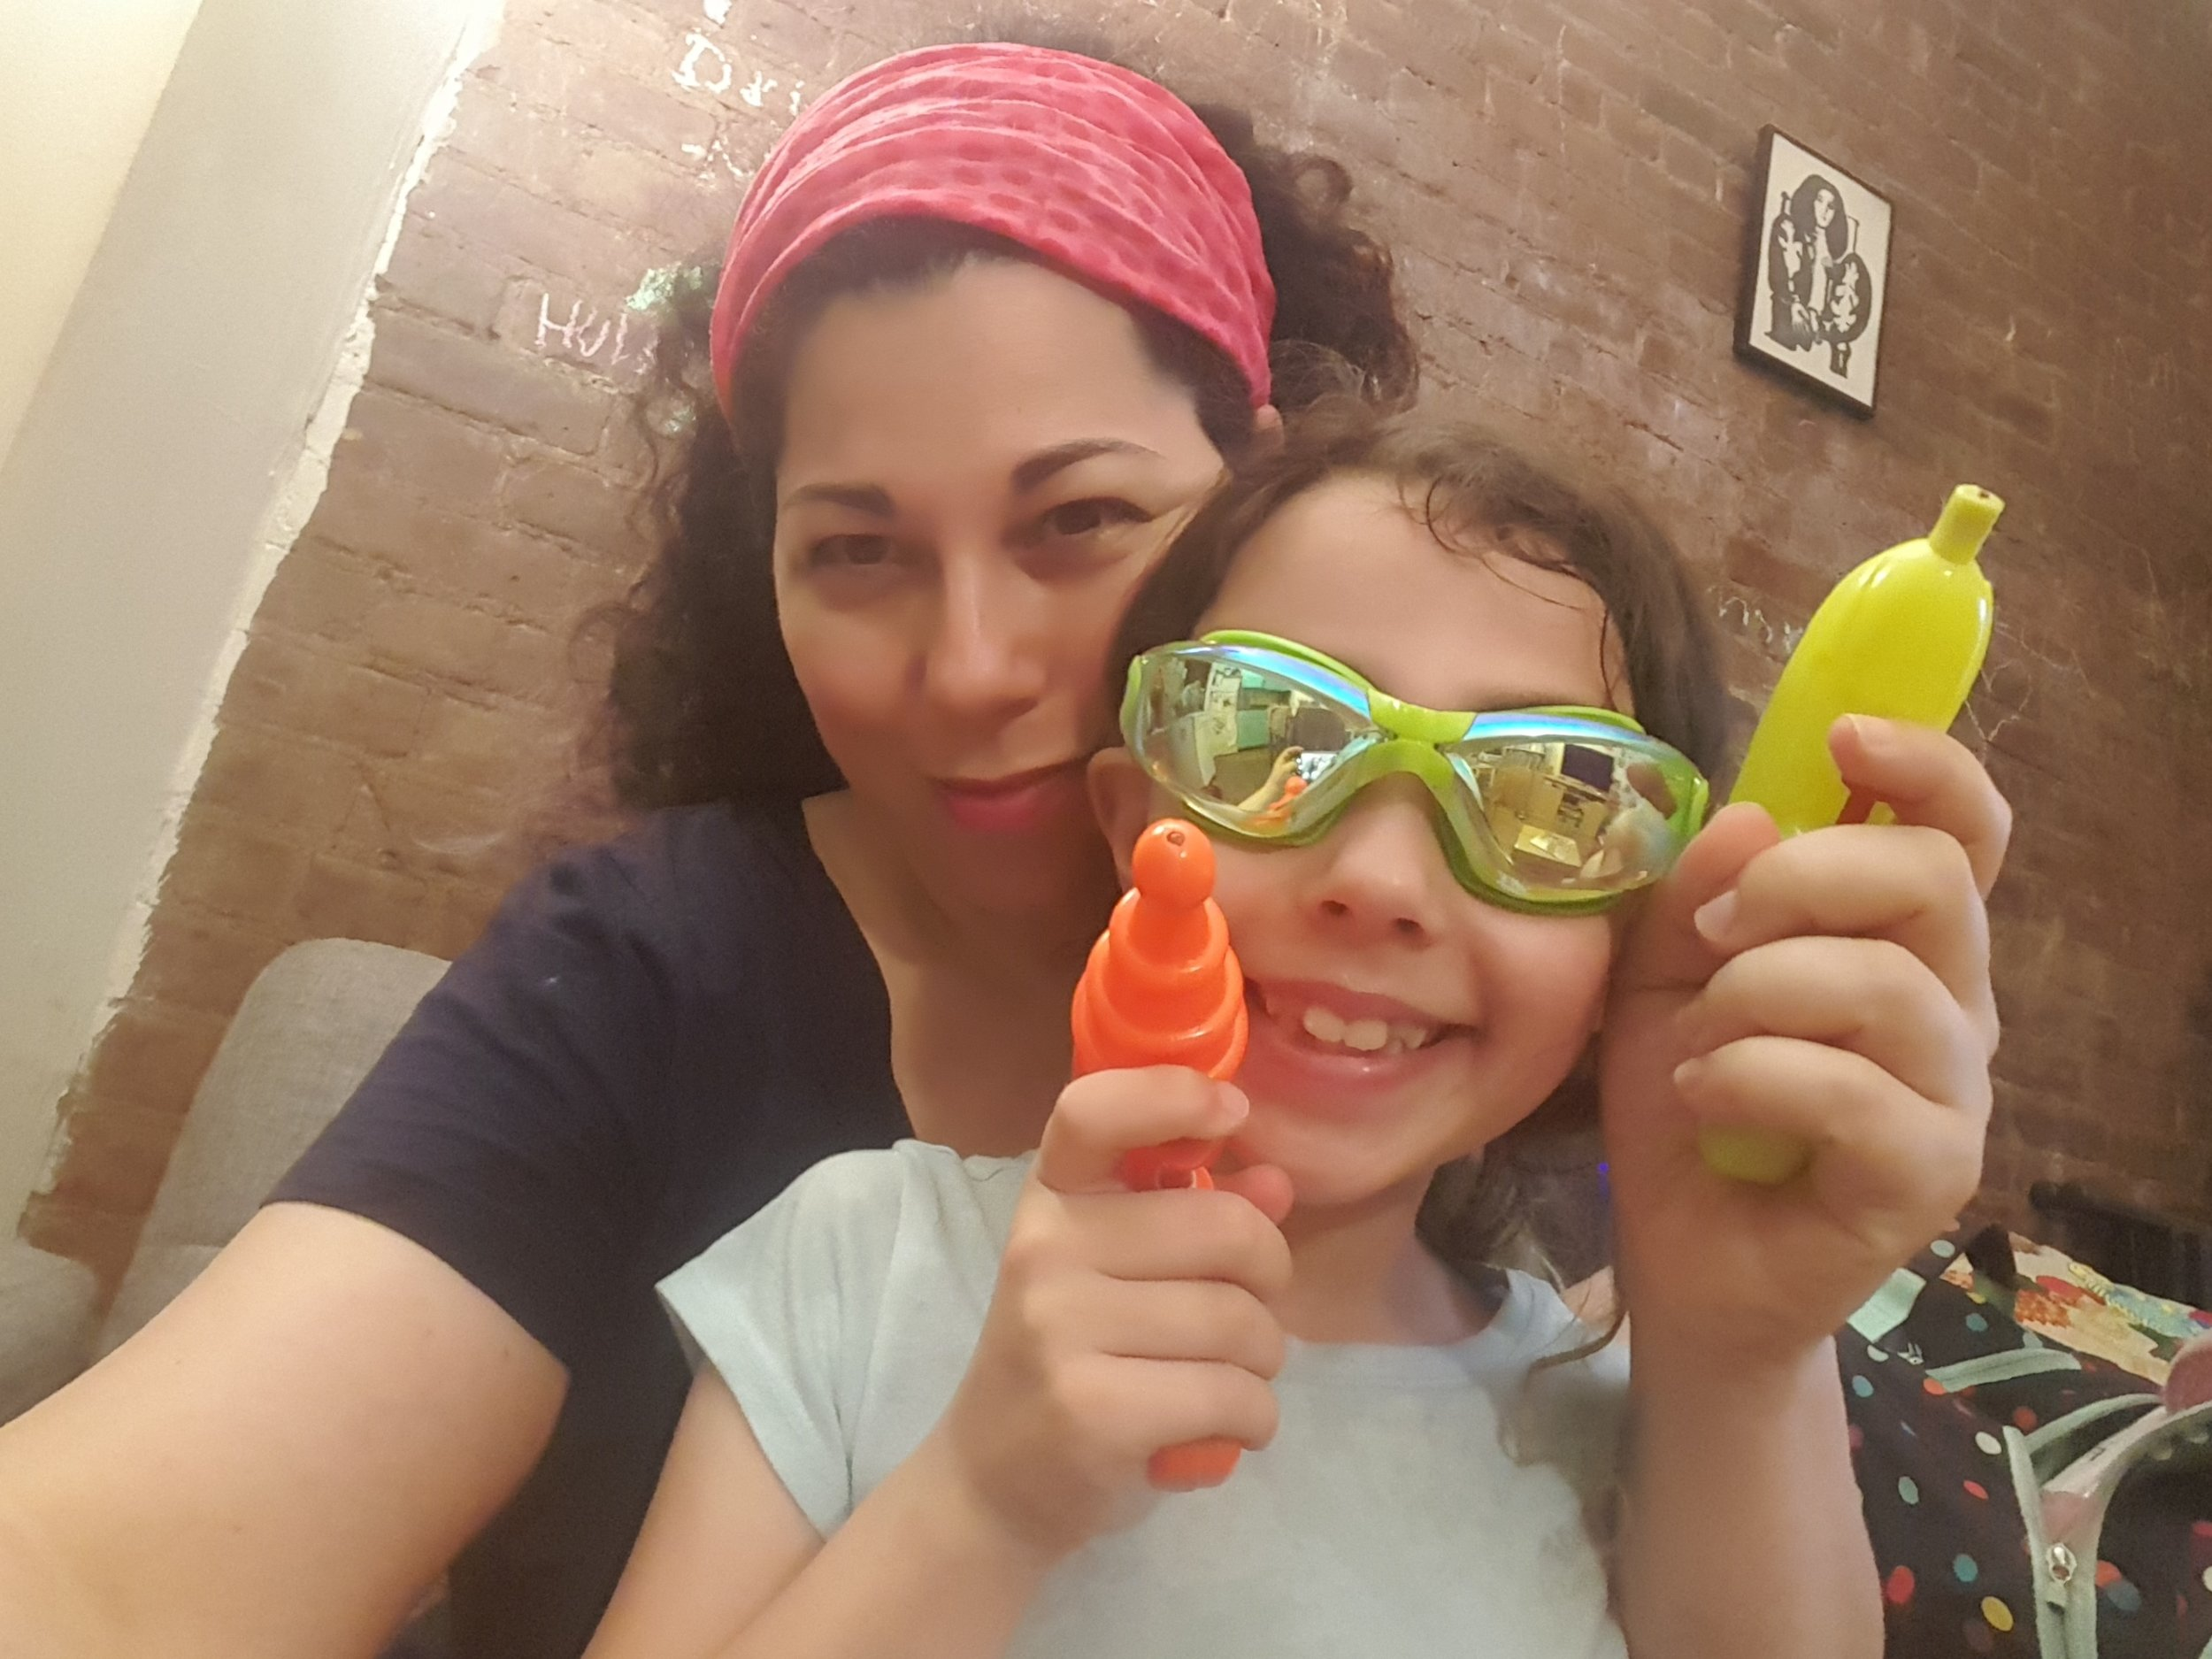 Mommy-daughter waterfight